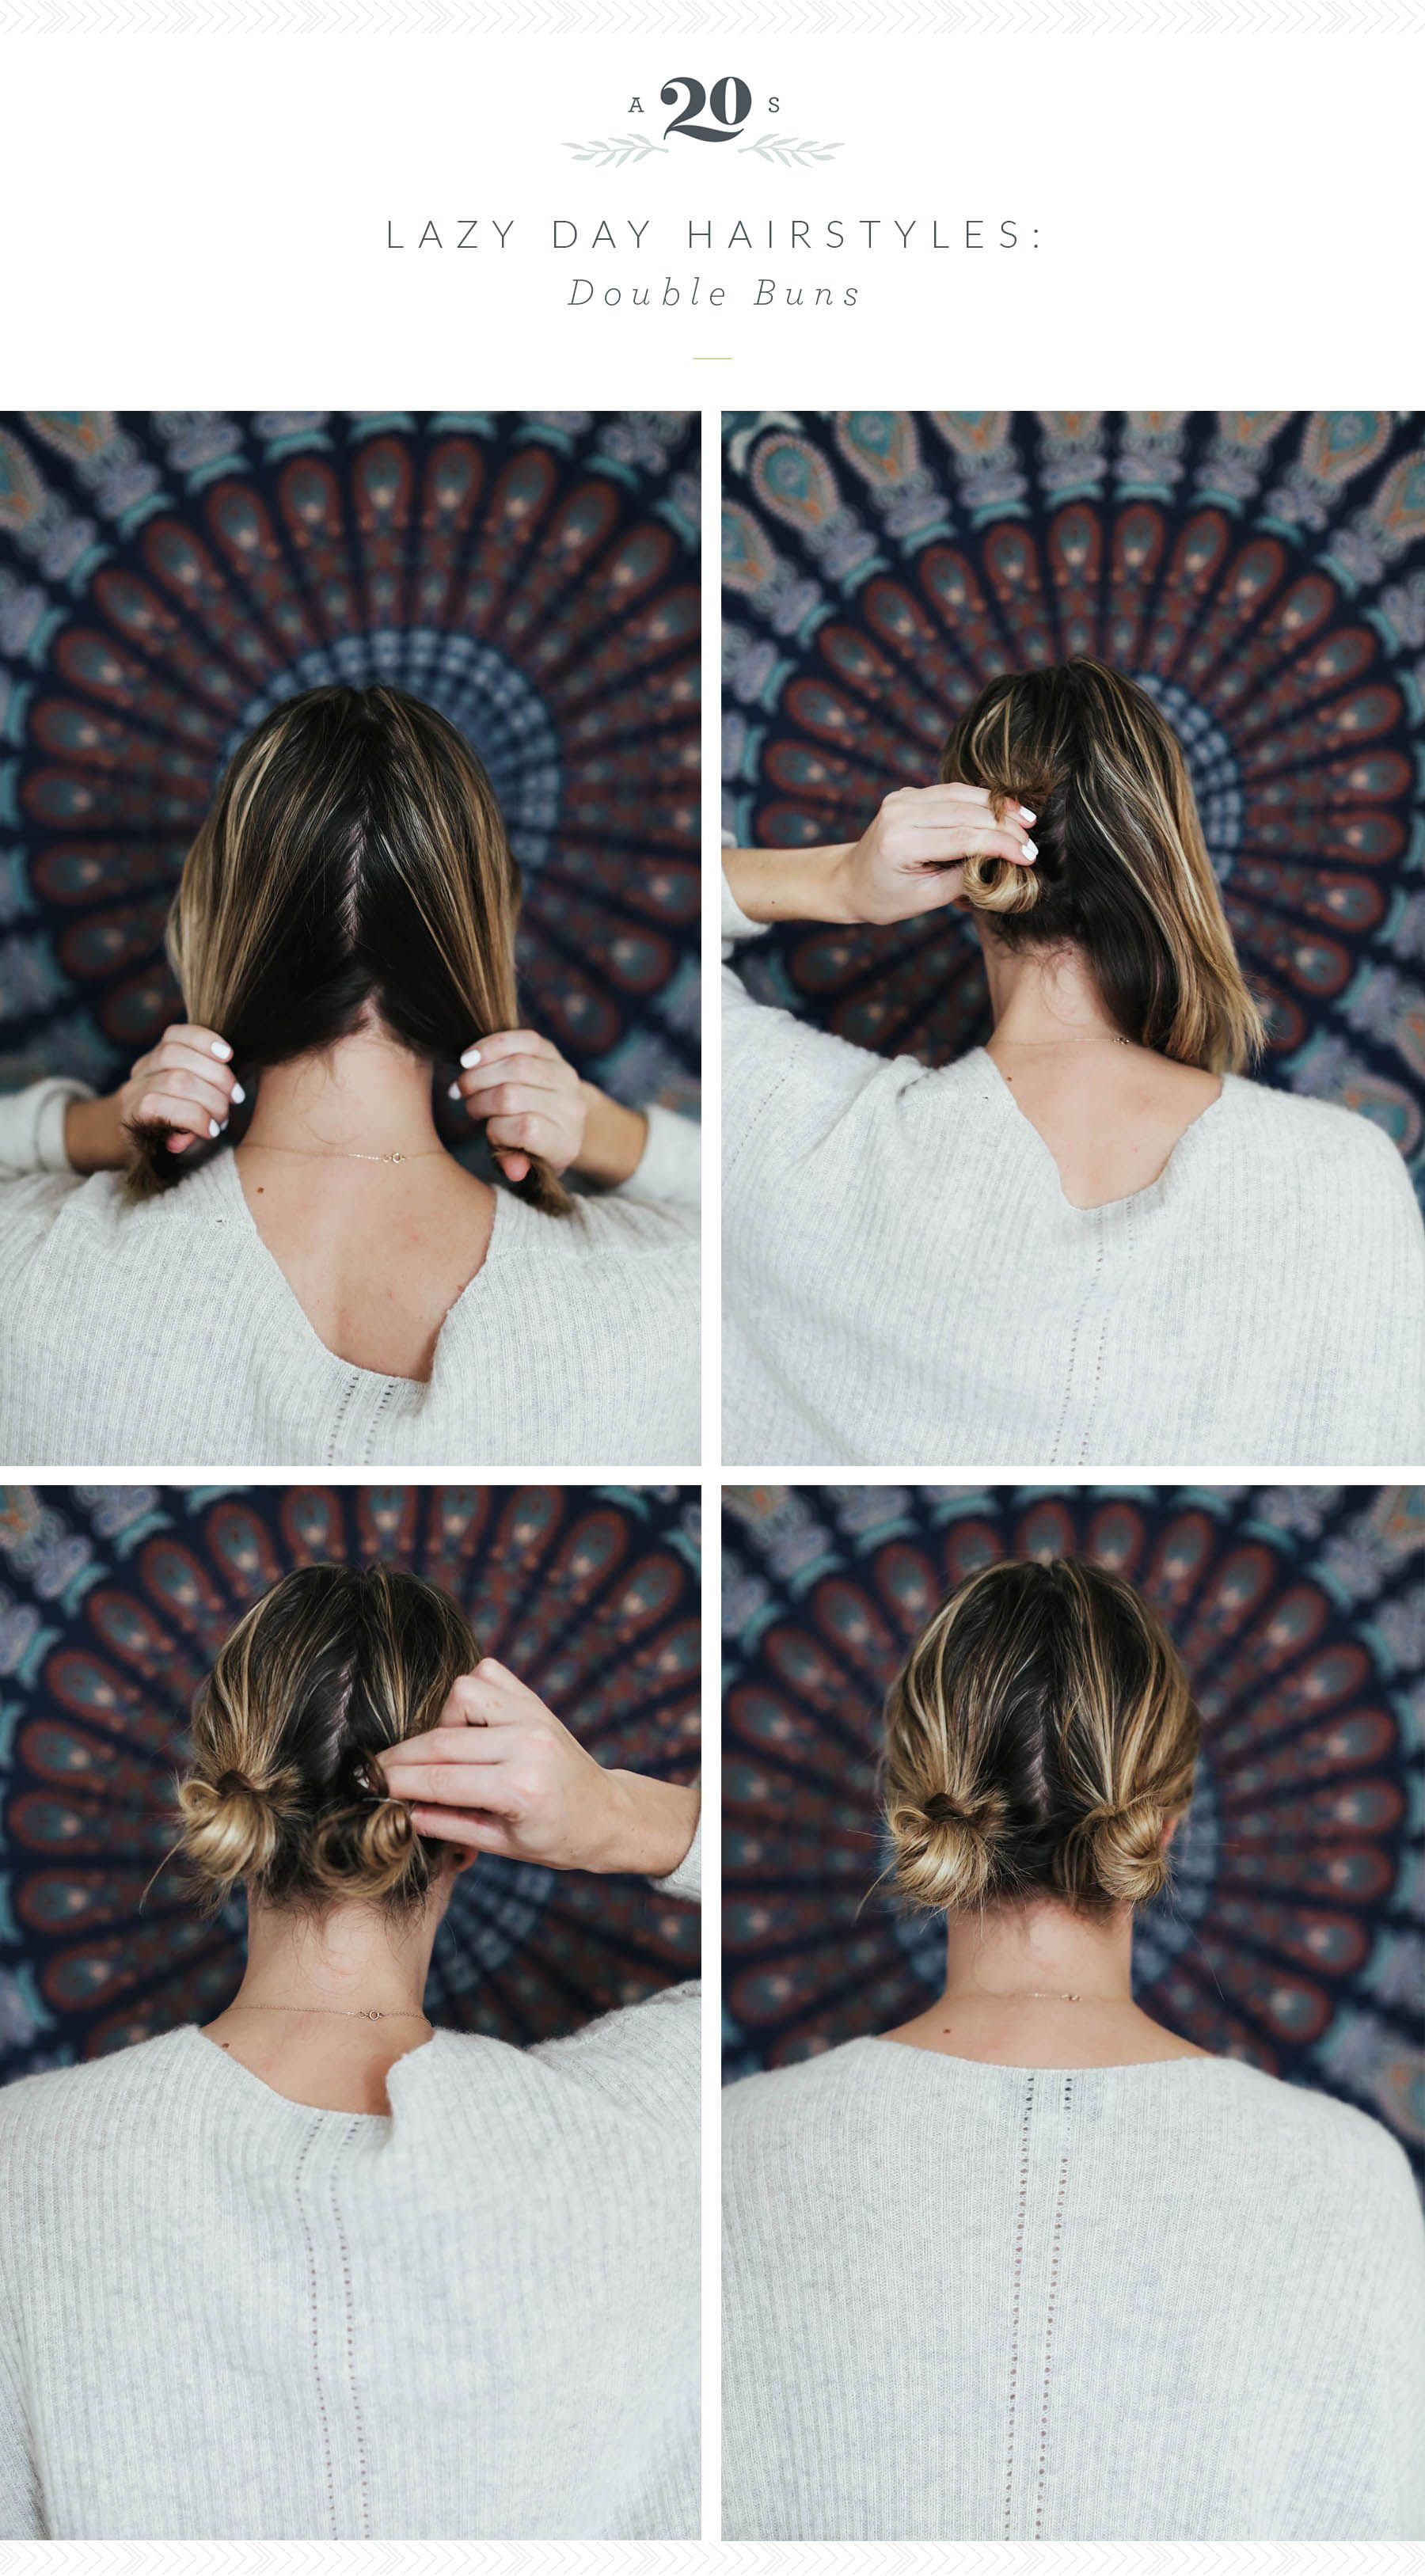 3 Easy Hairstyles For Lazy Days Lazy Girl Hairstyles Cute Lazy Hairstyles Short Hair Styles Easy